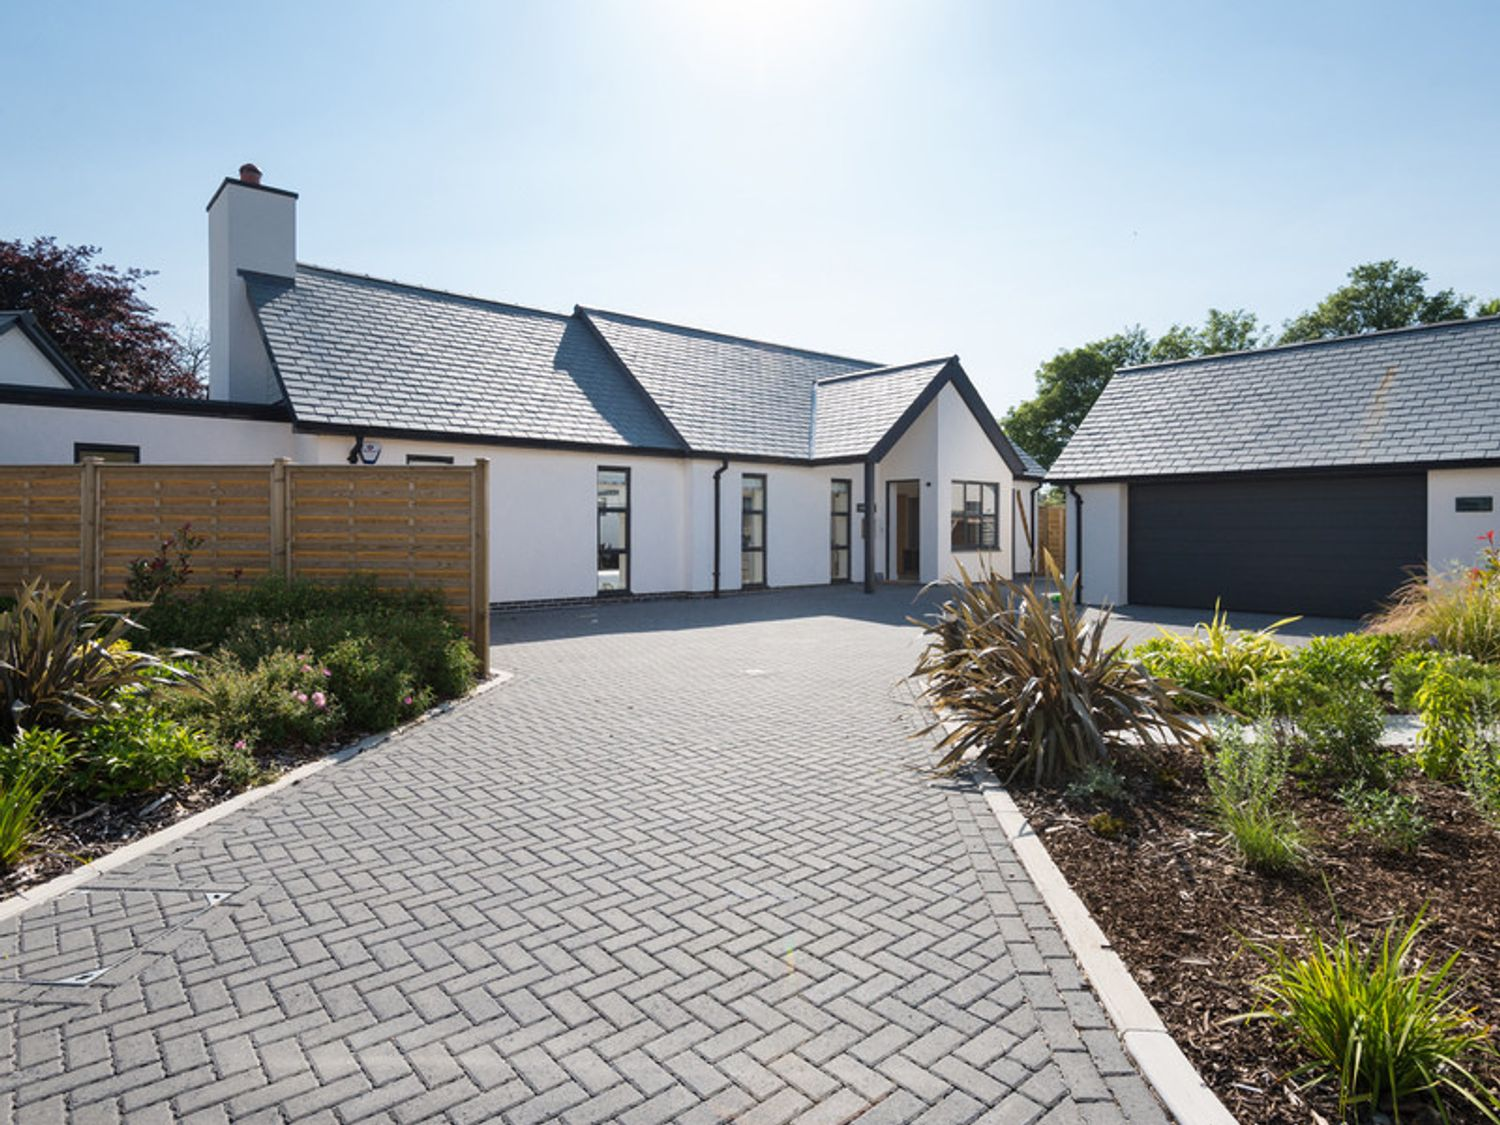 Colliers - Cornwall - 1080641 - photo 1